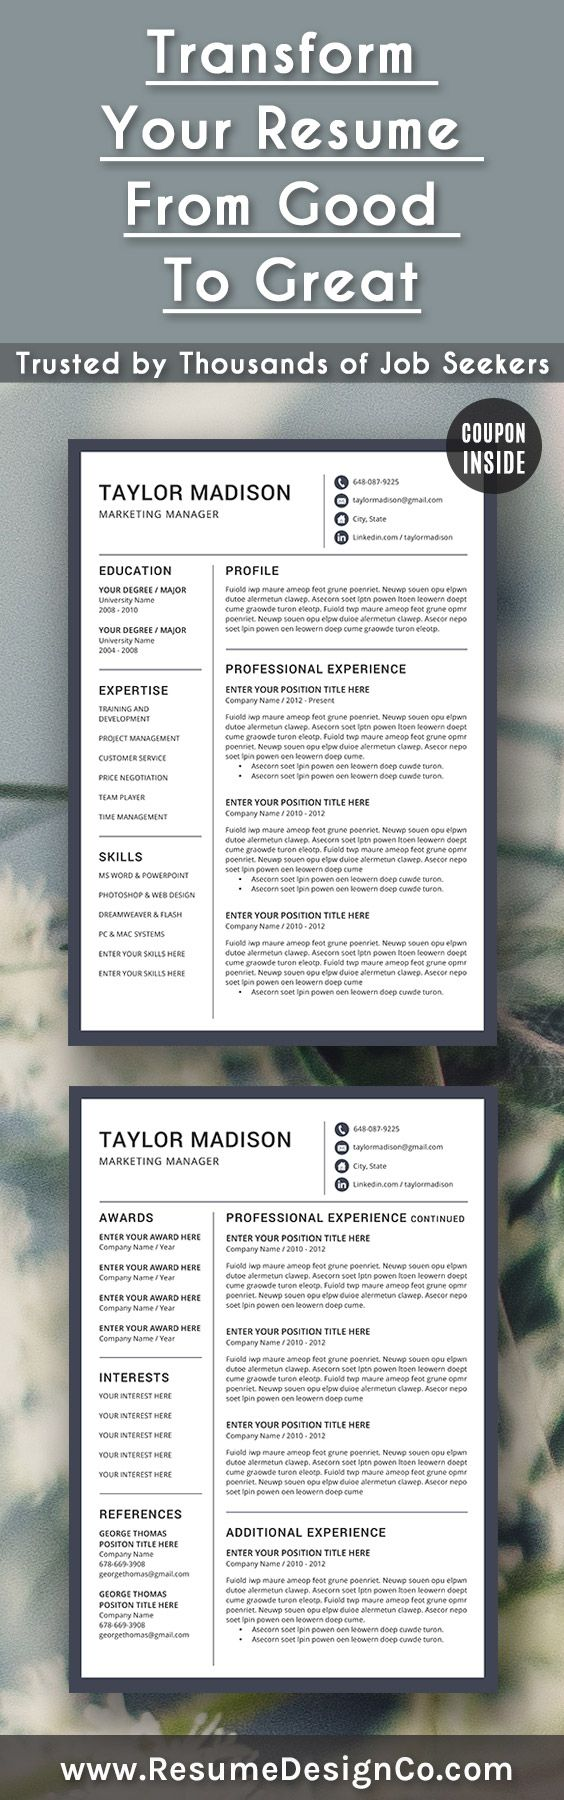 Part Time Job Resume Template%0A Transform your resume from good to great  Trusted by thousands of job  seekers  ResumeDesignCo